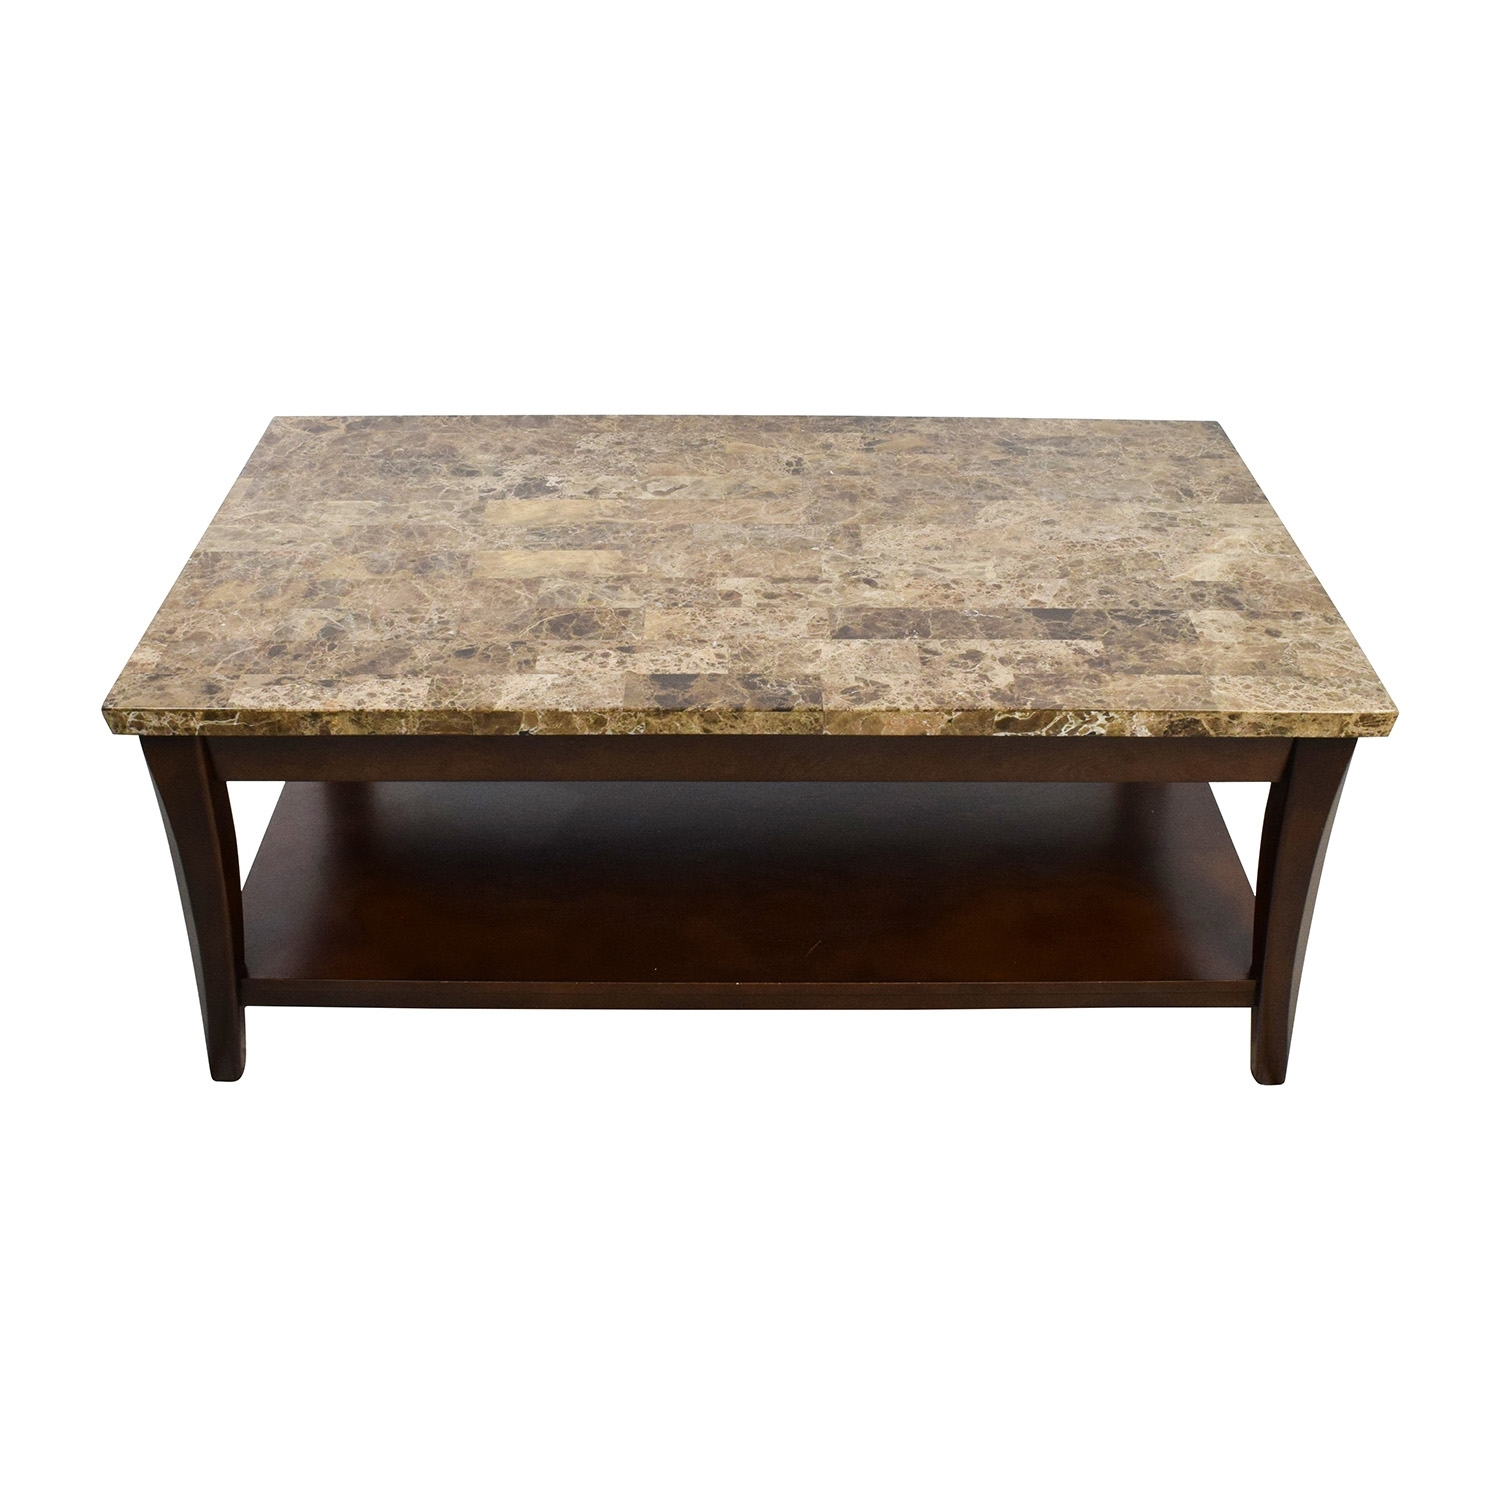 Marble And Wood Coffee Tables - Damabianca regarding Alcide Rectangular Marble Coffee Tables (Image 9 of 30)